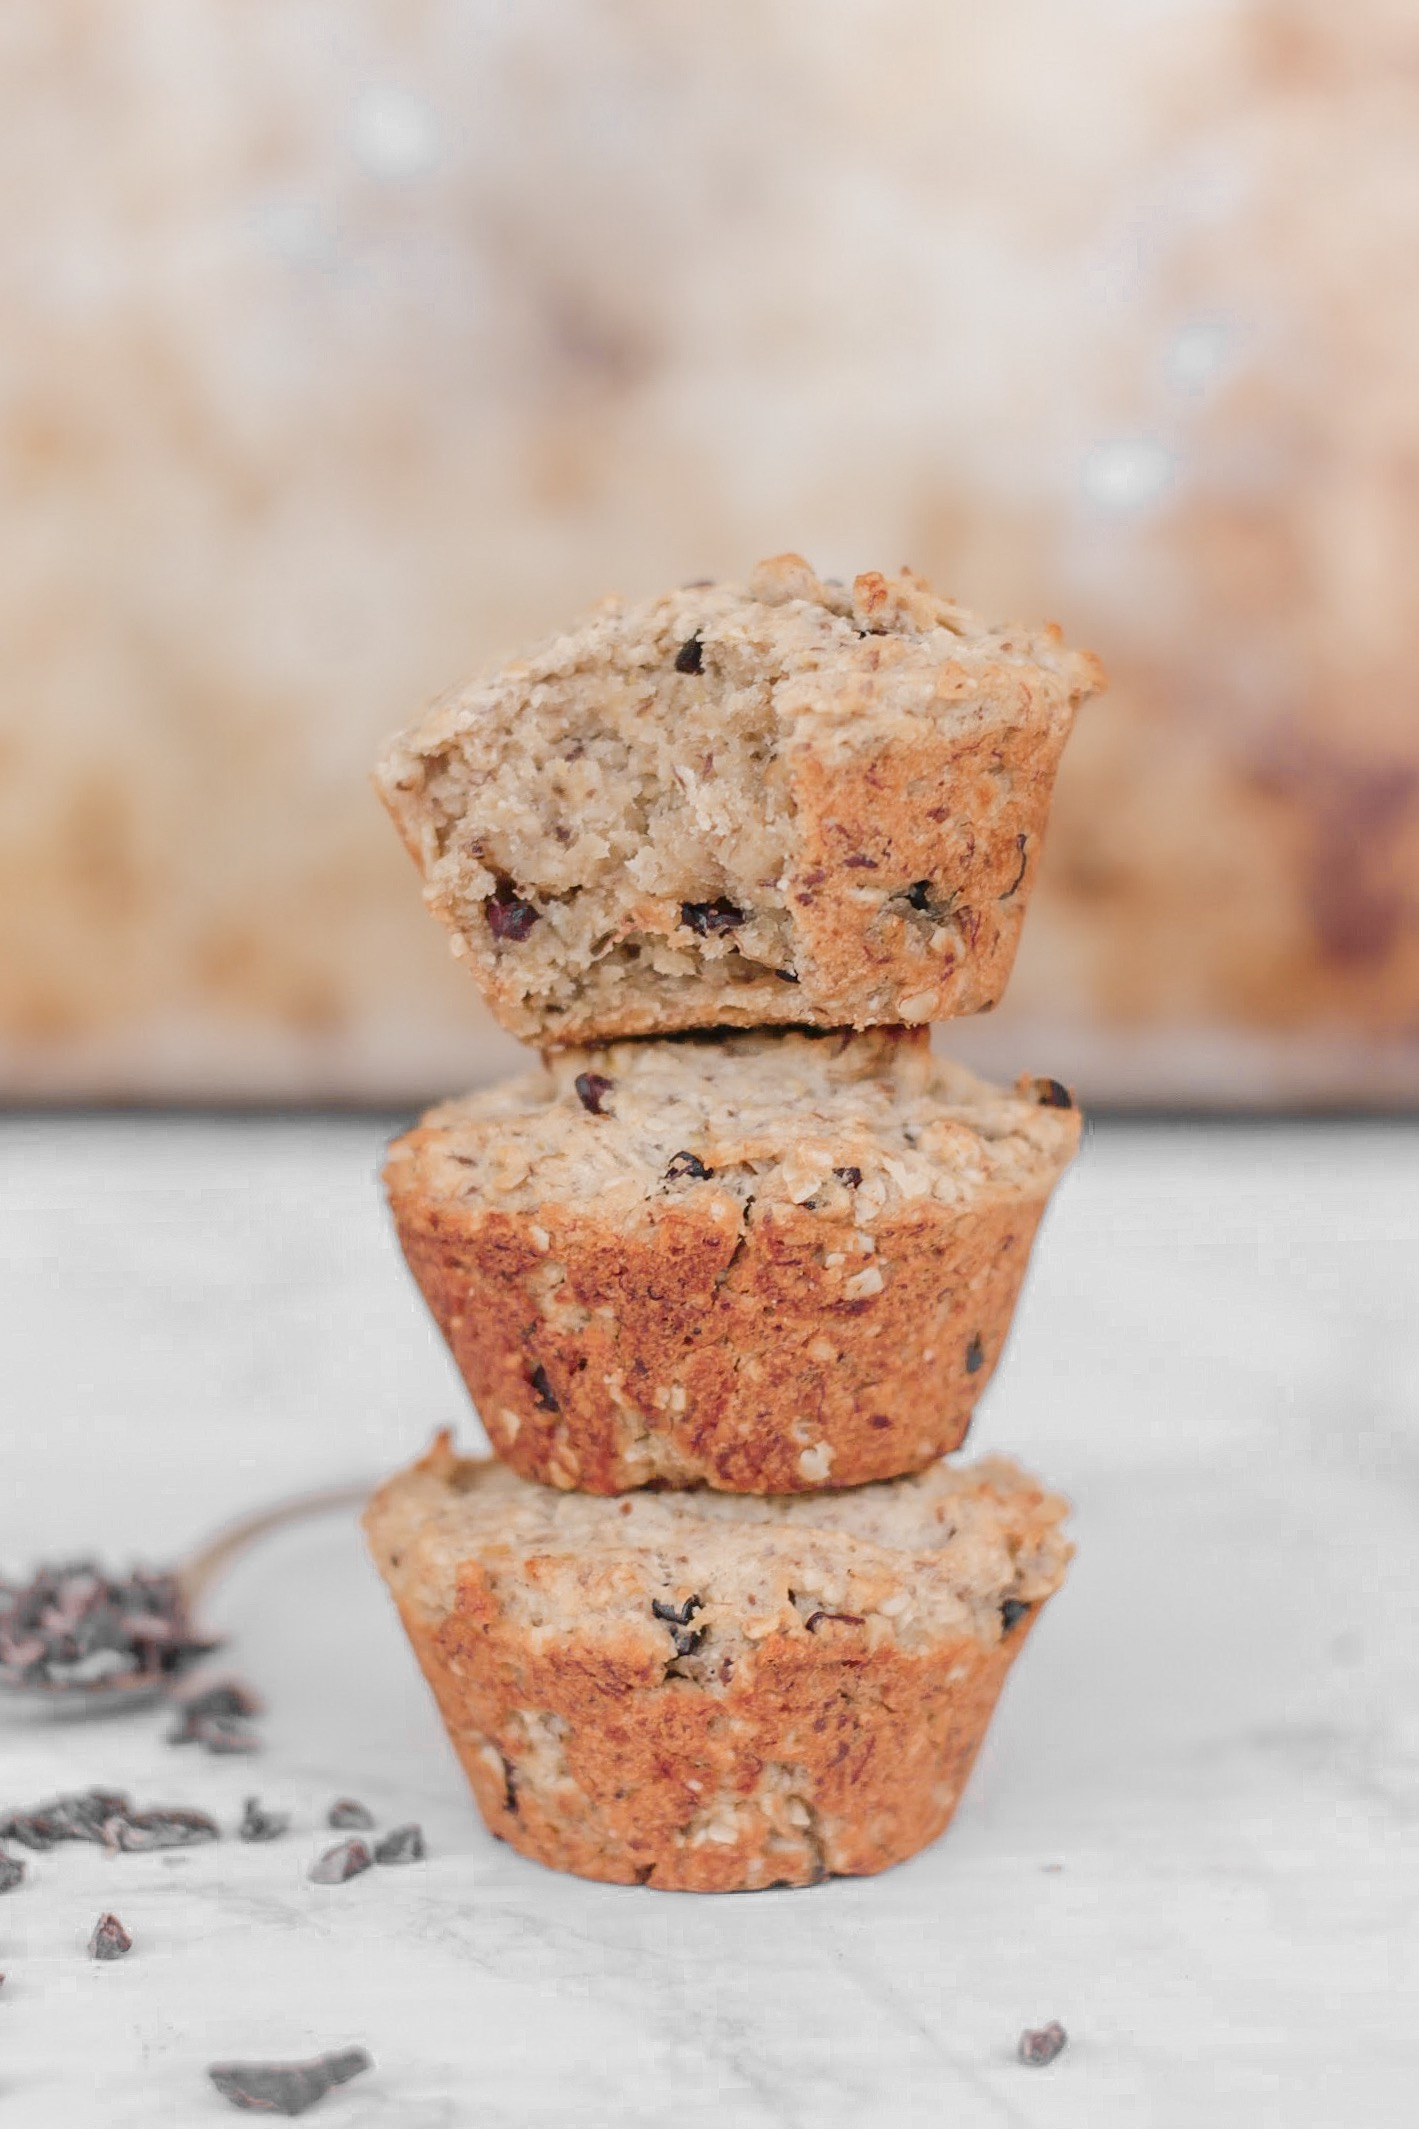 Banana Oat Protein Muffins